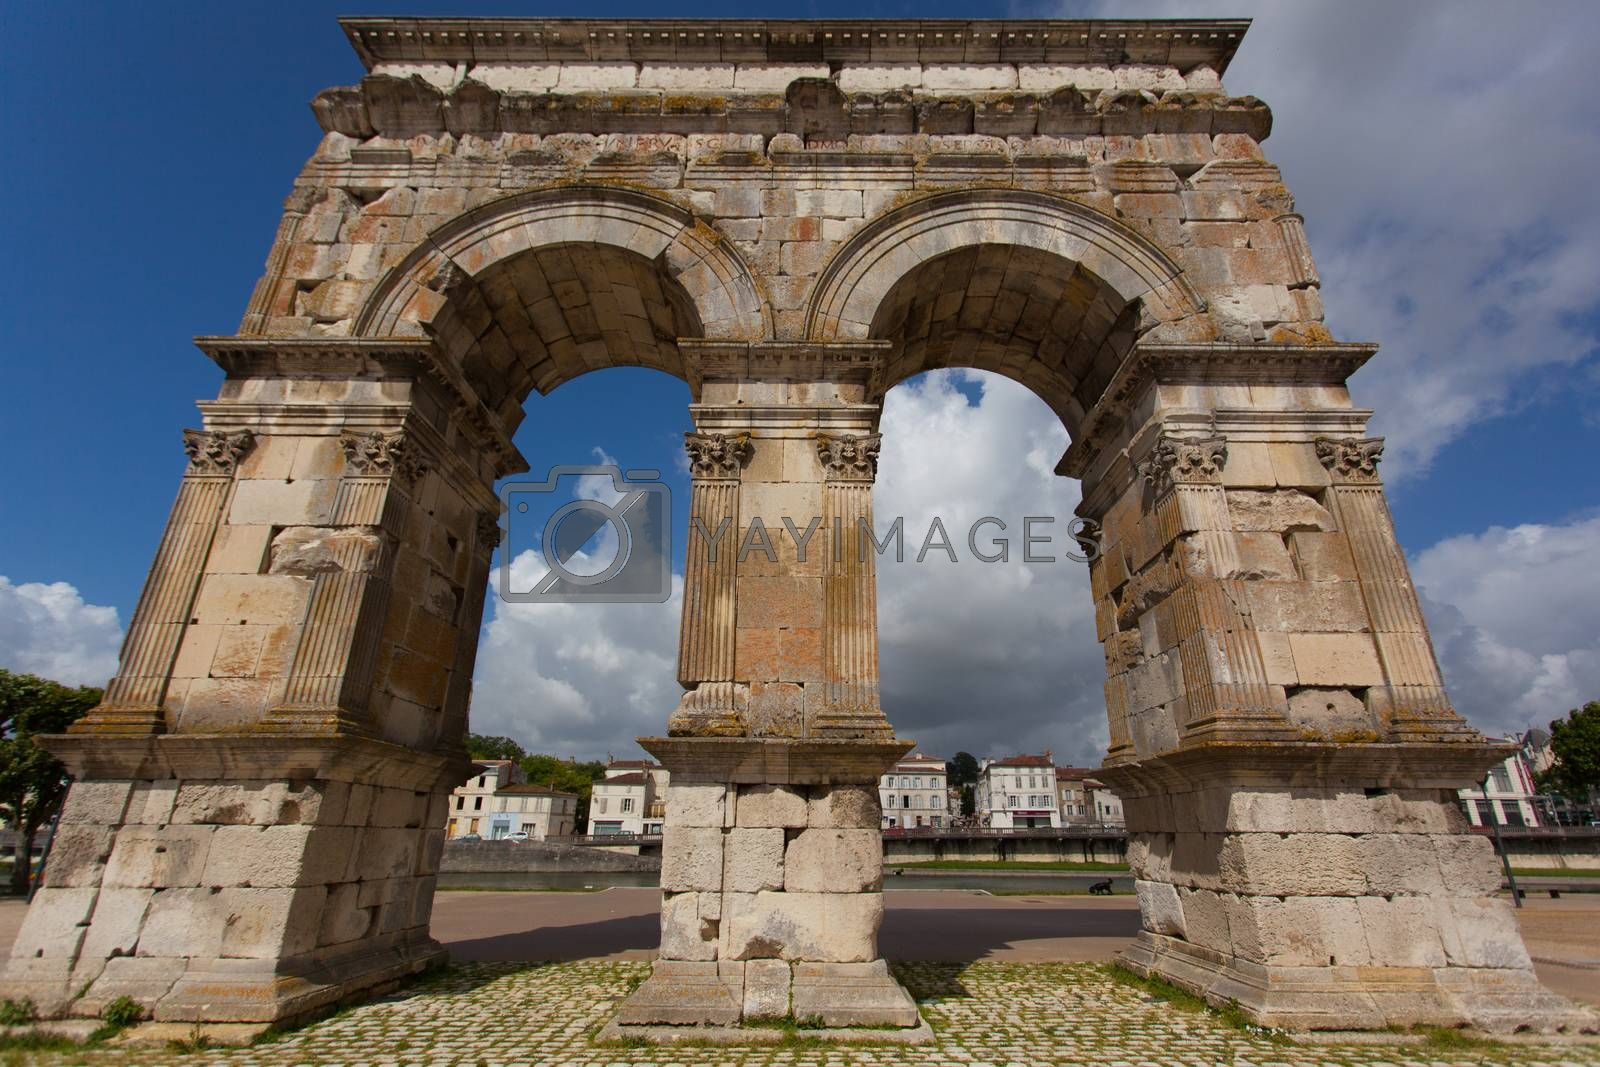 Germanicus roman arch of the ville of Saintes in french charente maritime region